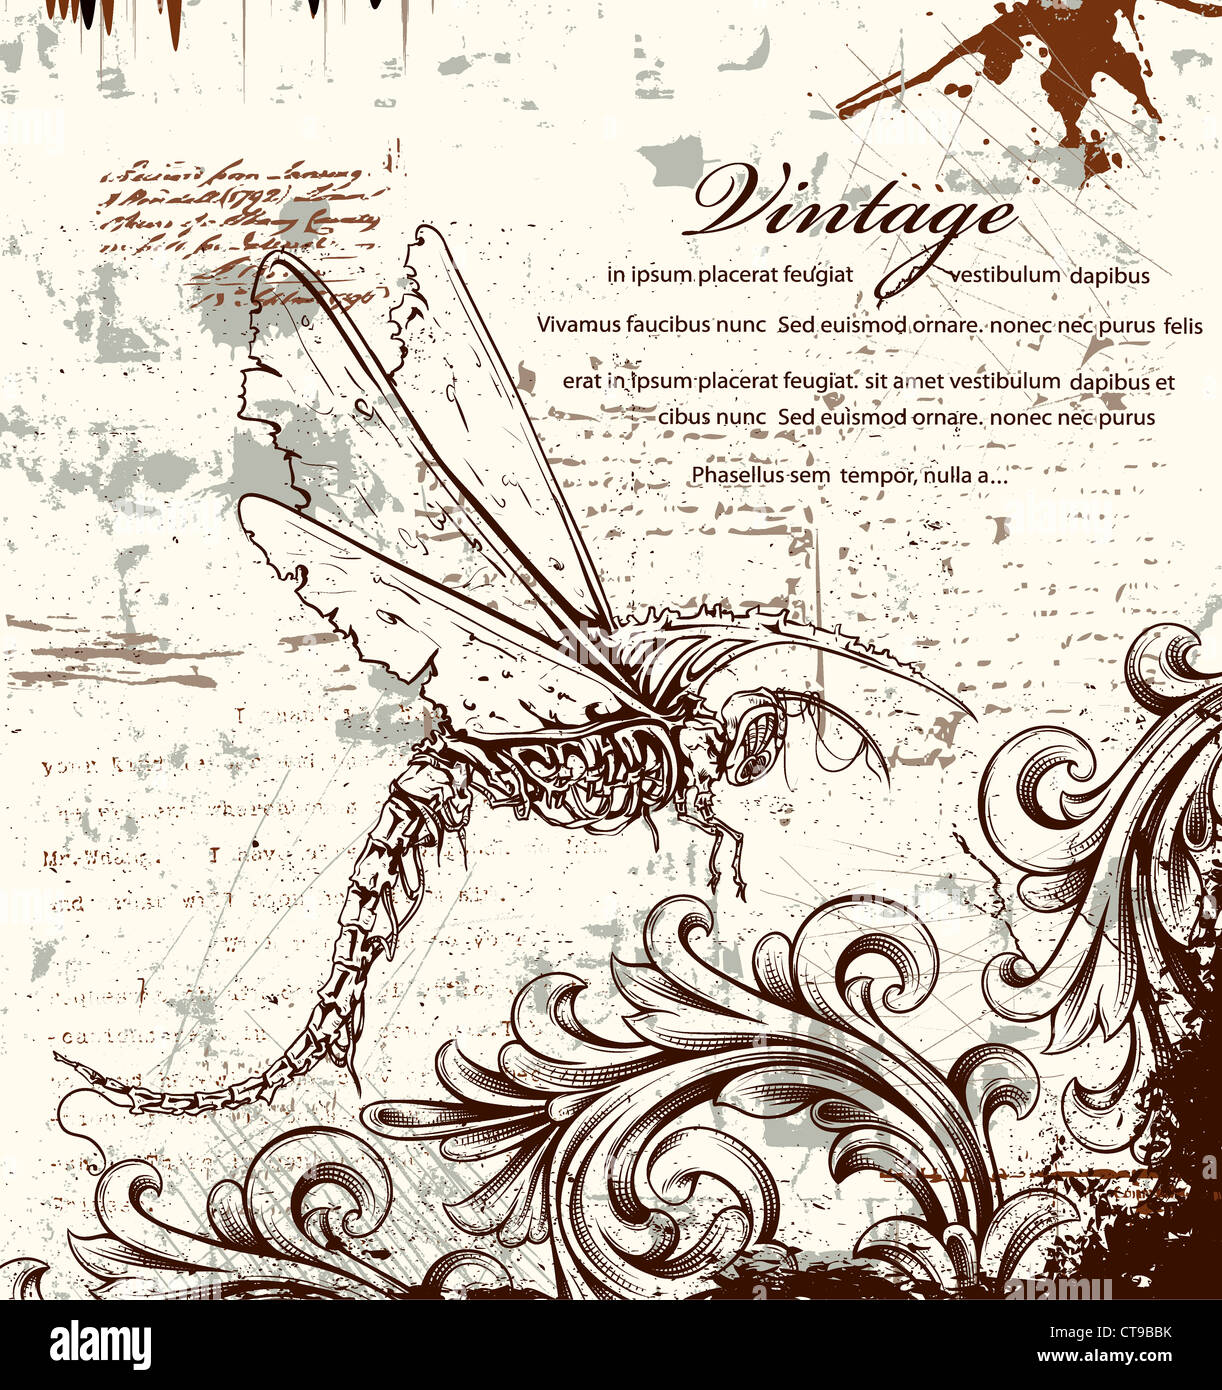 vintage ilustration with dragonfly - Stock Image